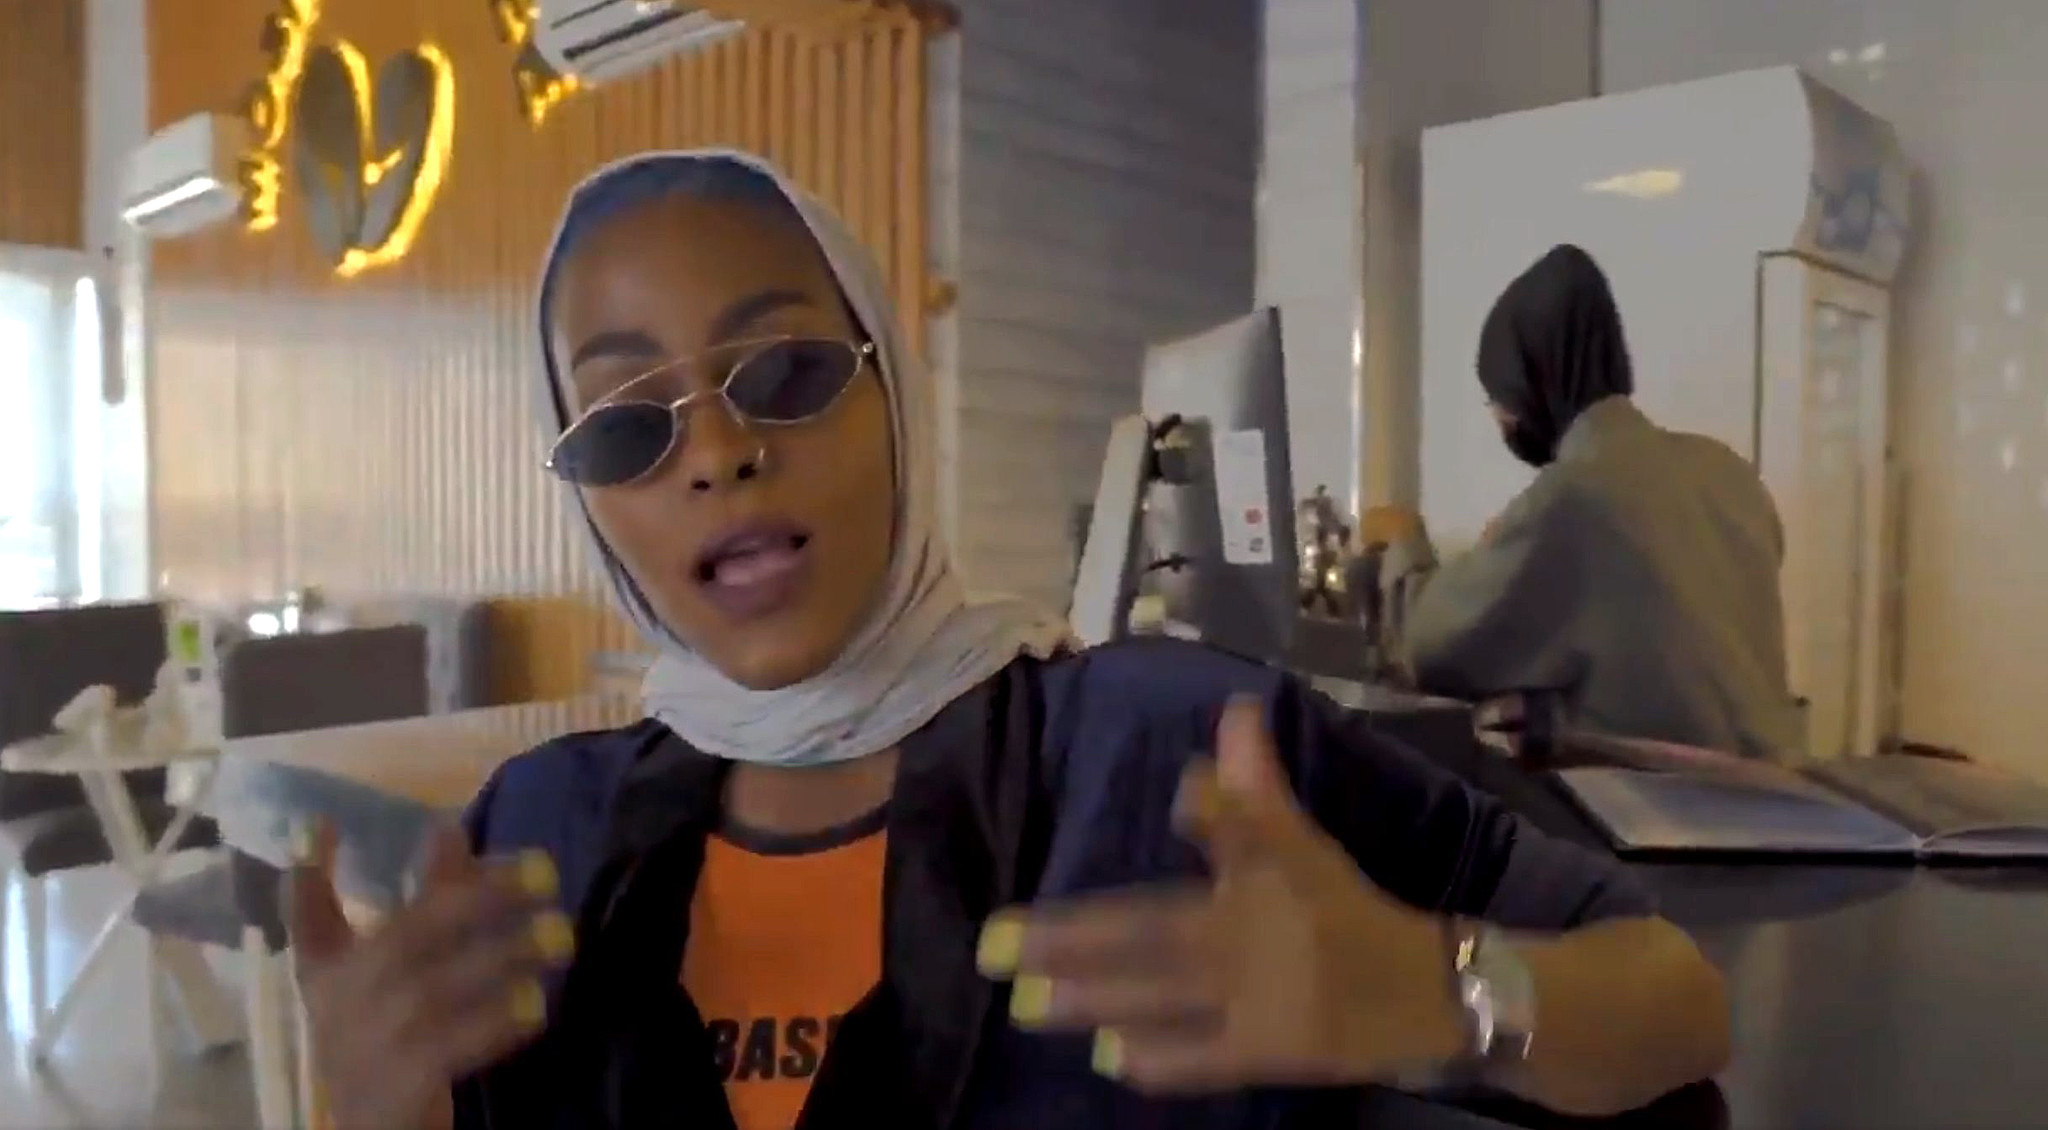 Arrest ordered for female rapper who rhymed about Mecca